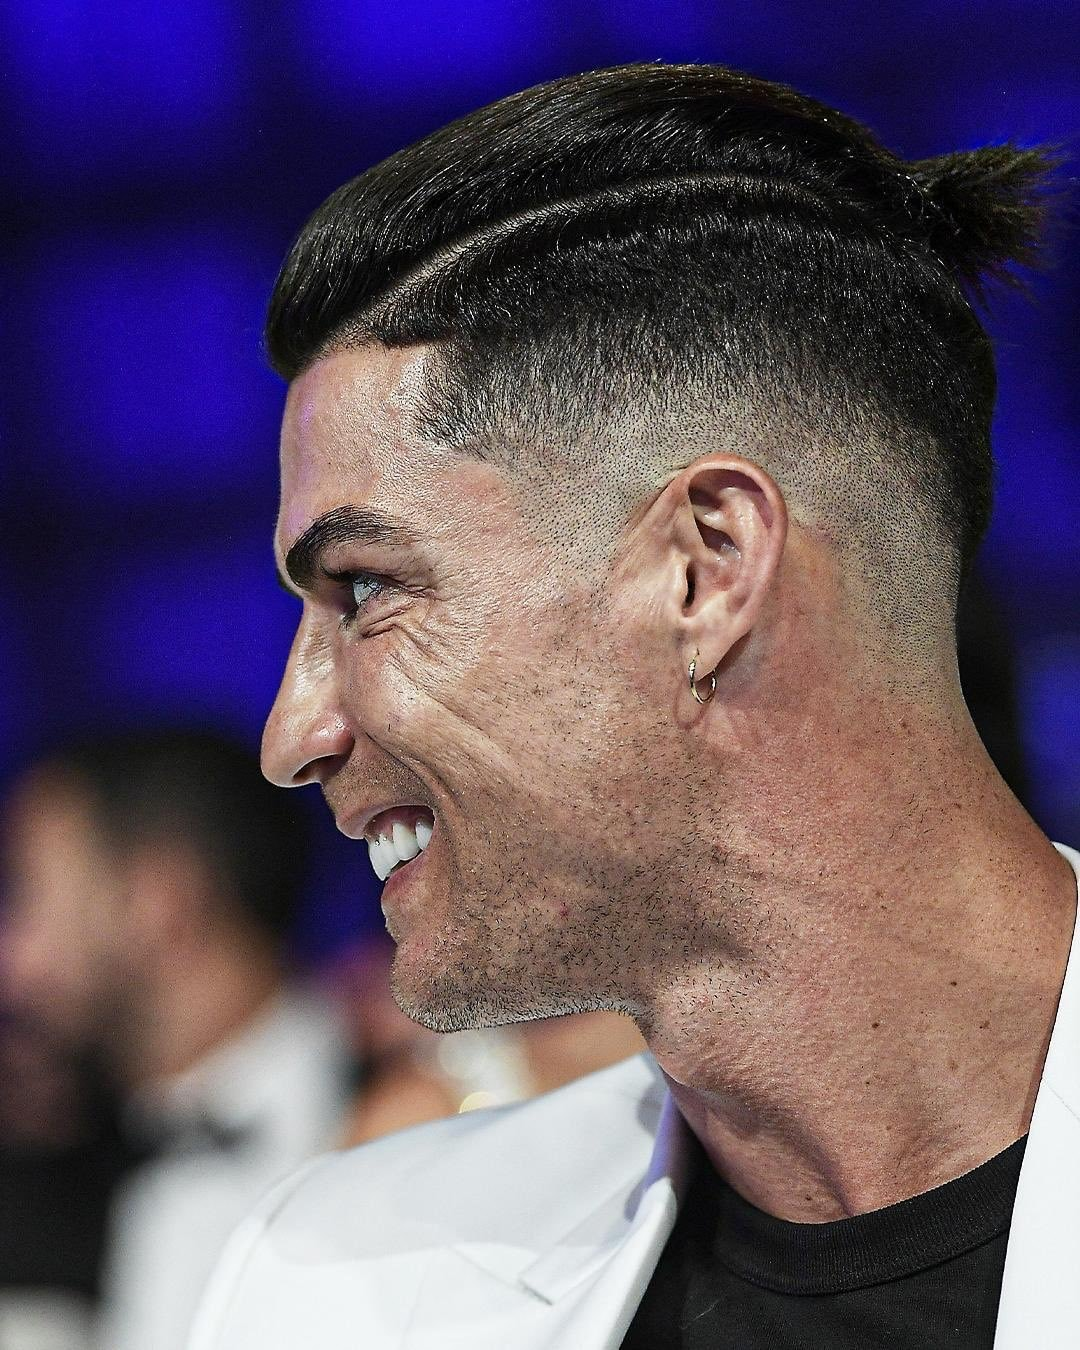 Ronaldo's New Hairstyle 👌 👑 in 2020 Ronaldo new